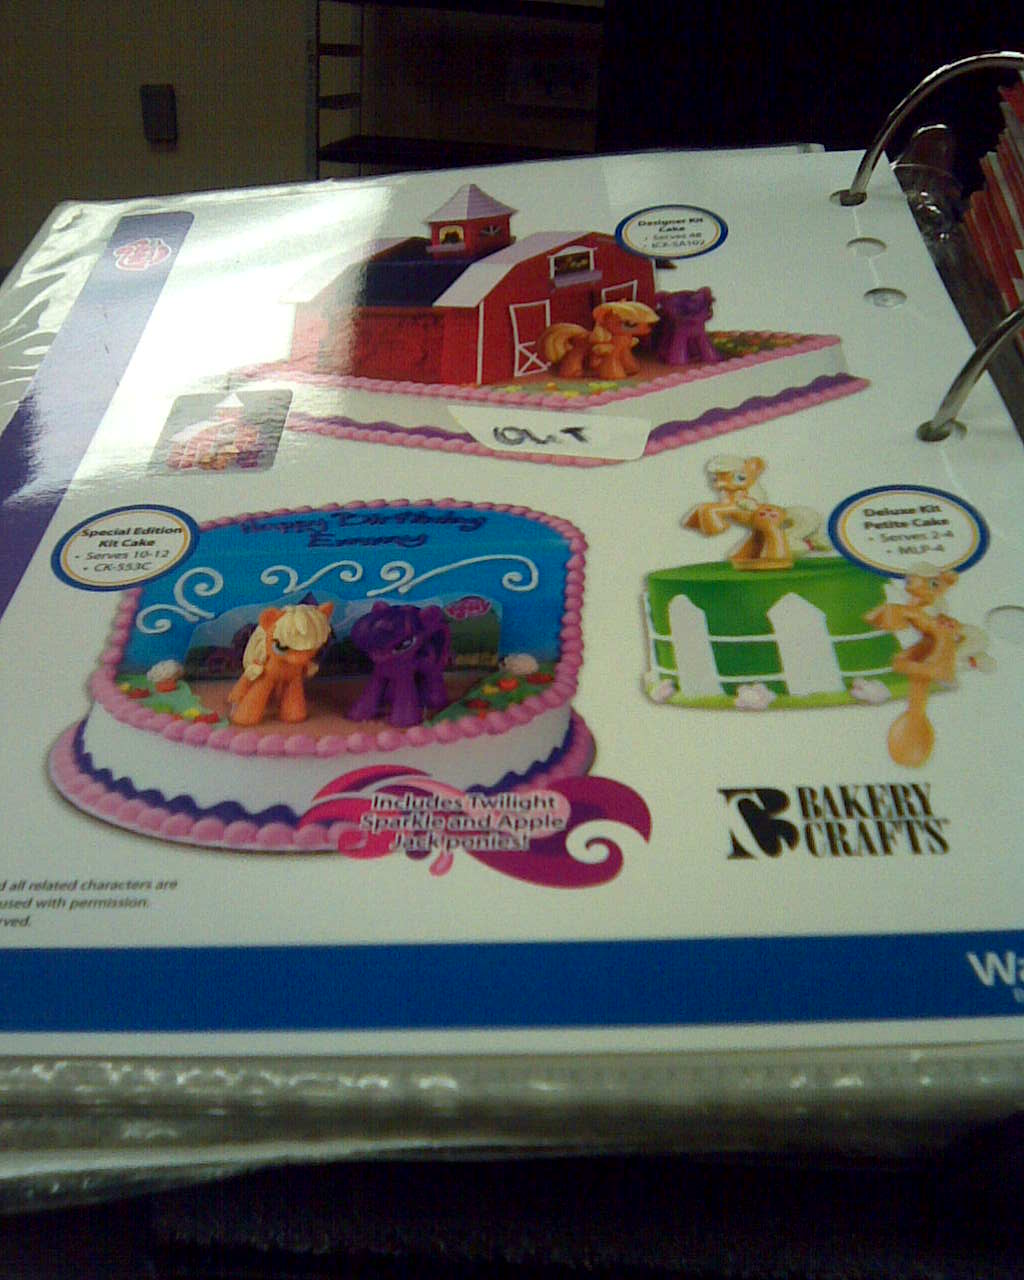 Equestria Daily - MLP Stuff!: More Pony Cakes at Wal-Mart